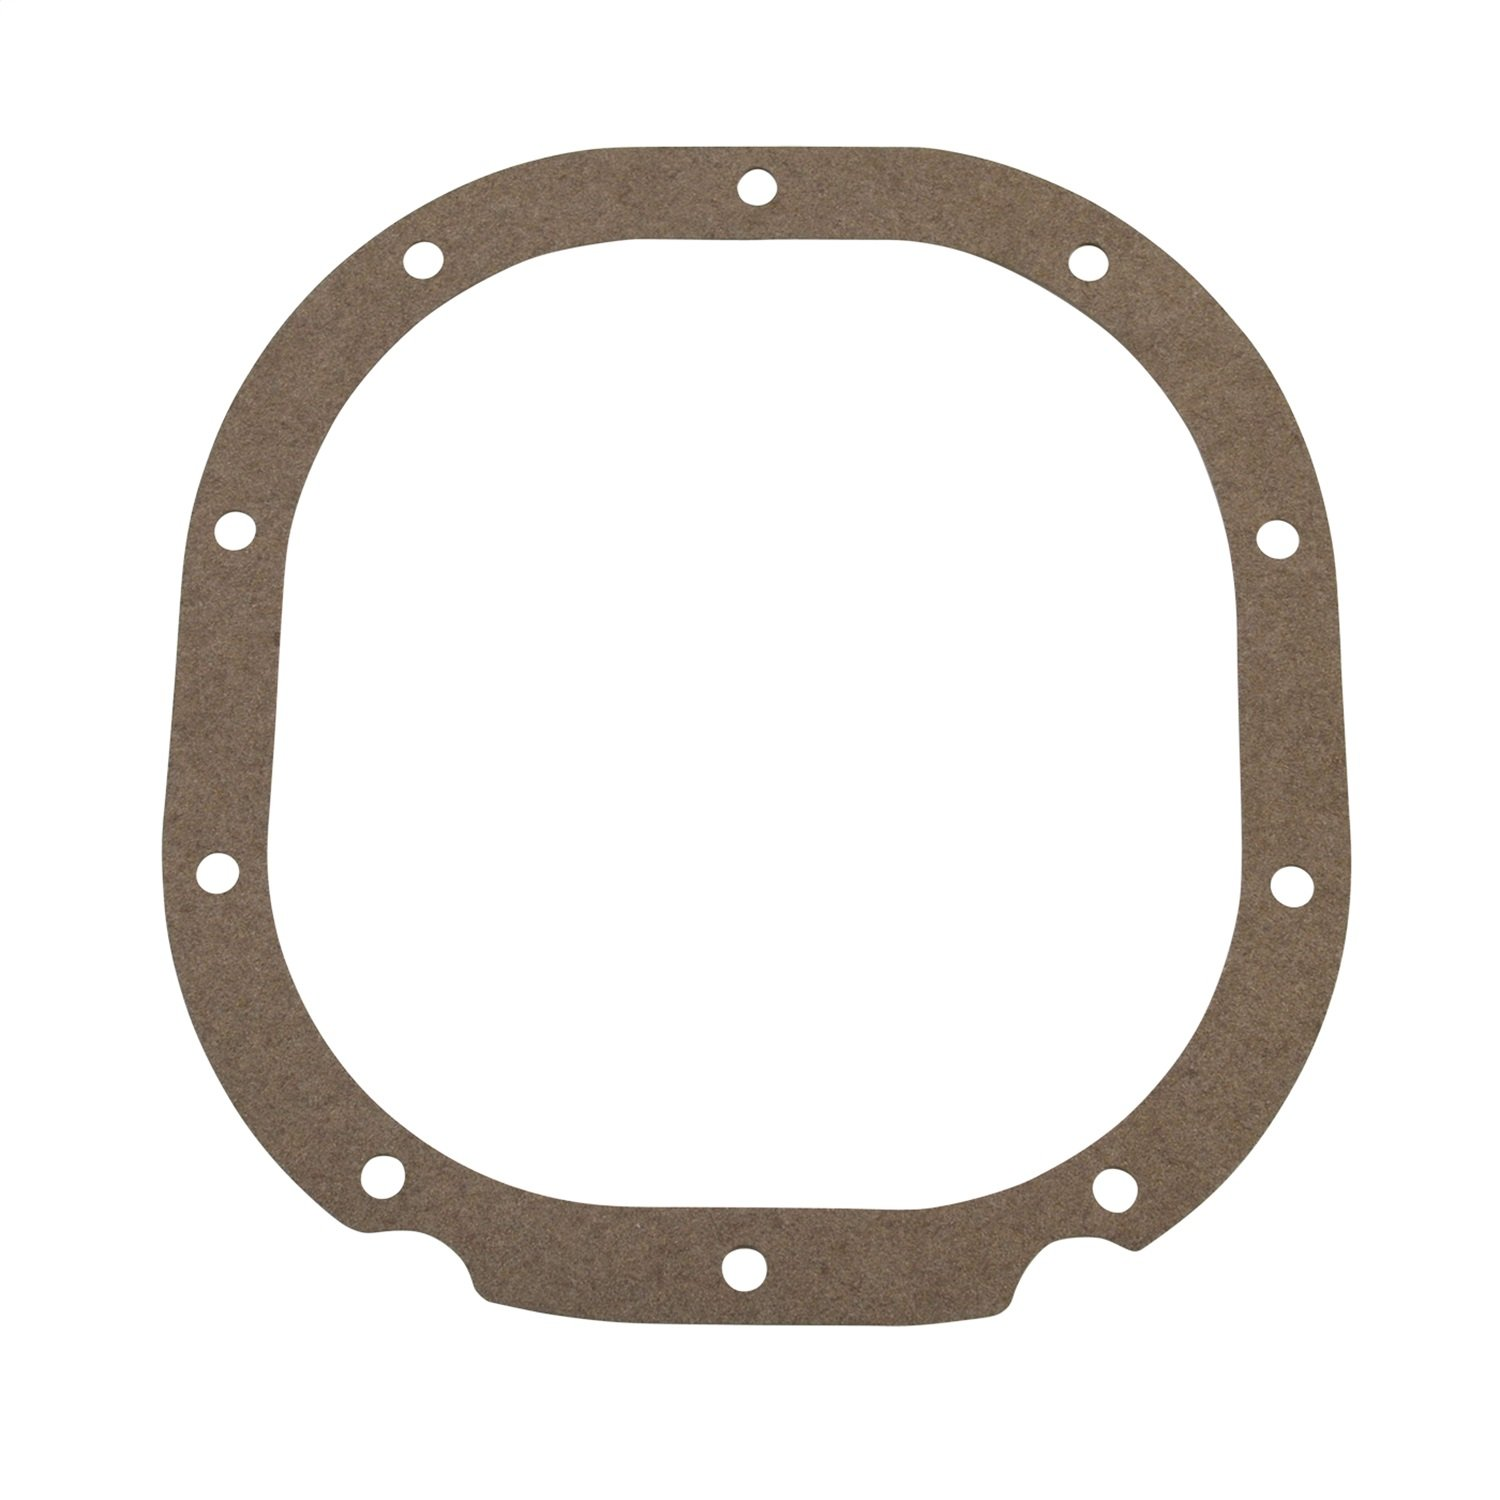 Yukon (YCGF8.8) Cover Gasket for Ford 8.8' Differential Yukon Gear